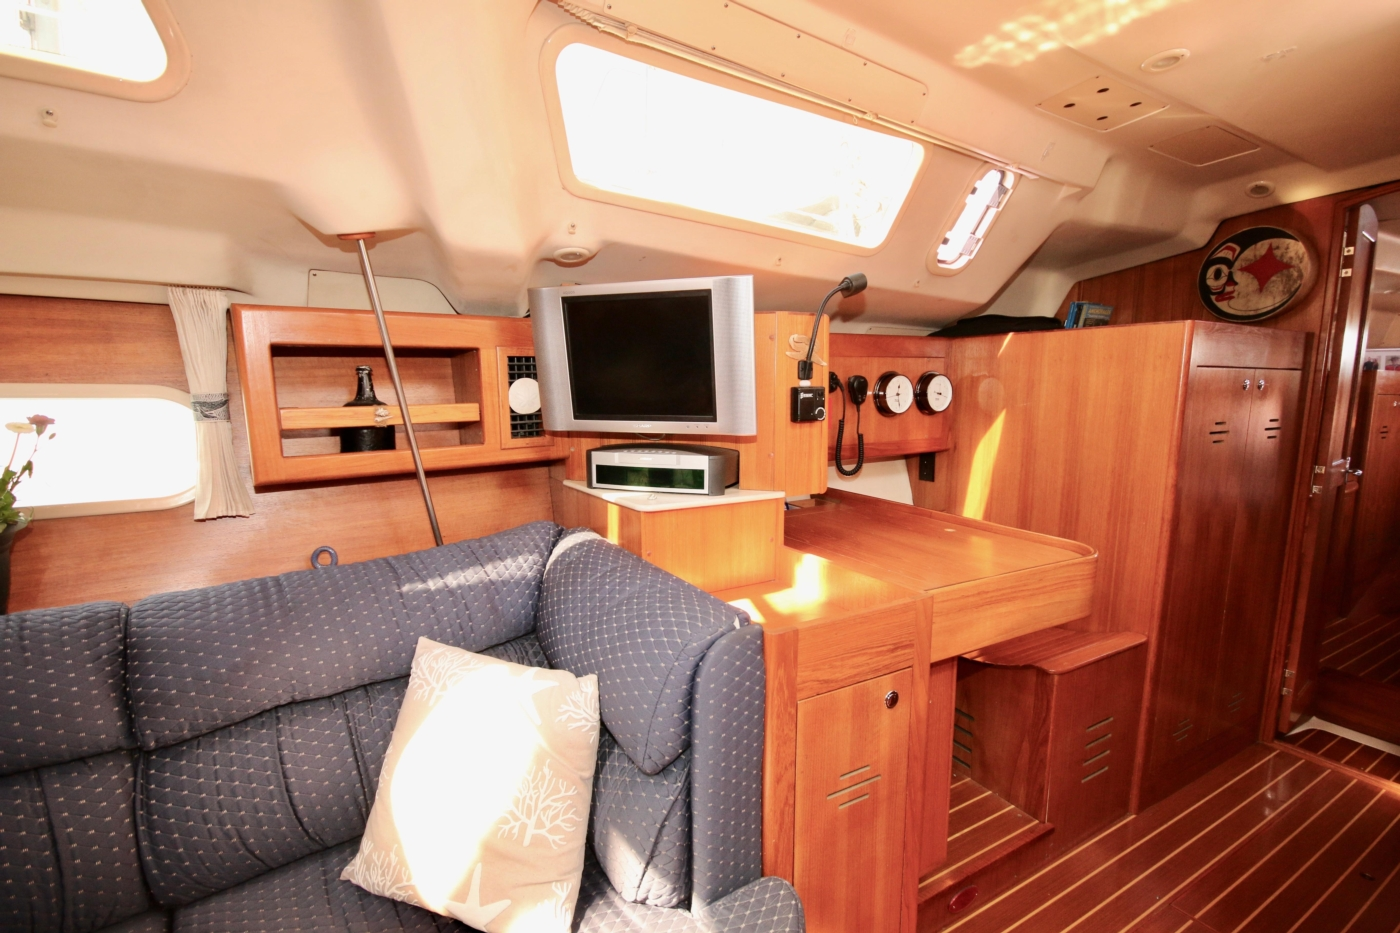 2004 Hunter Passage 420, Entertainment centre to starboard